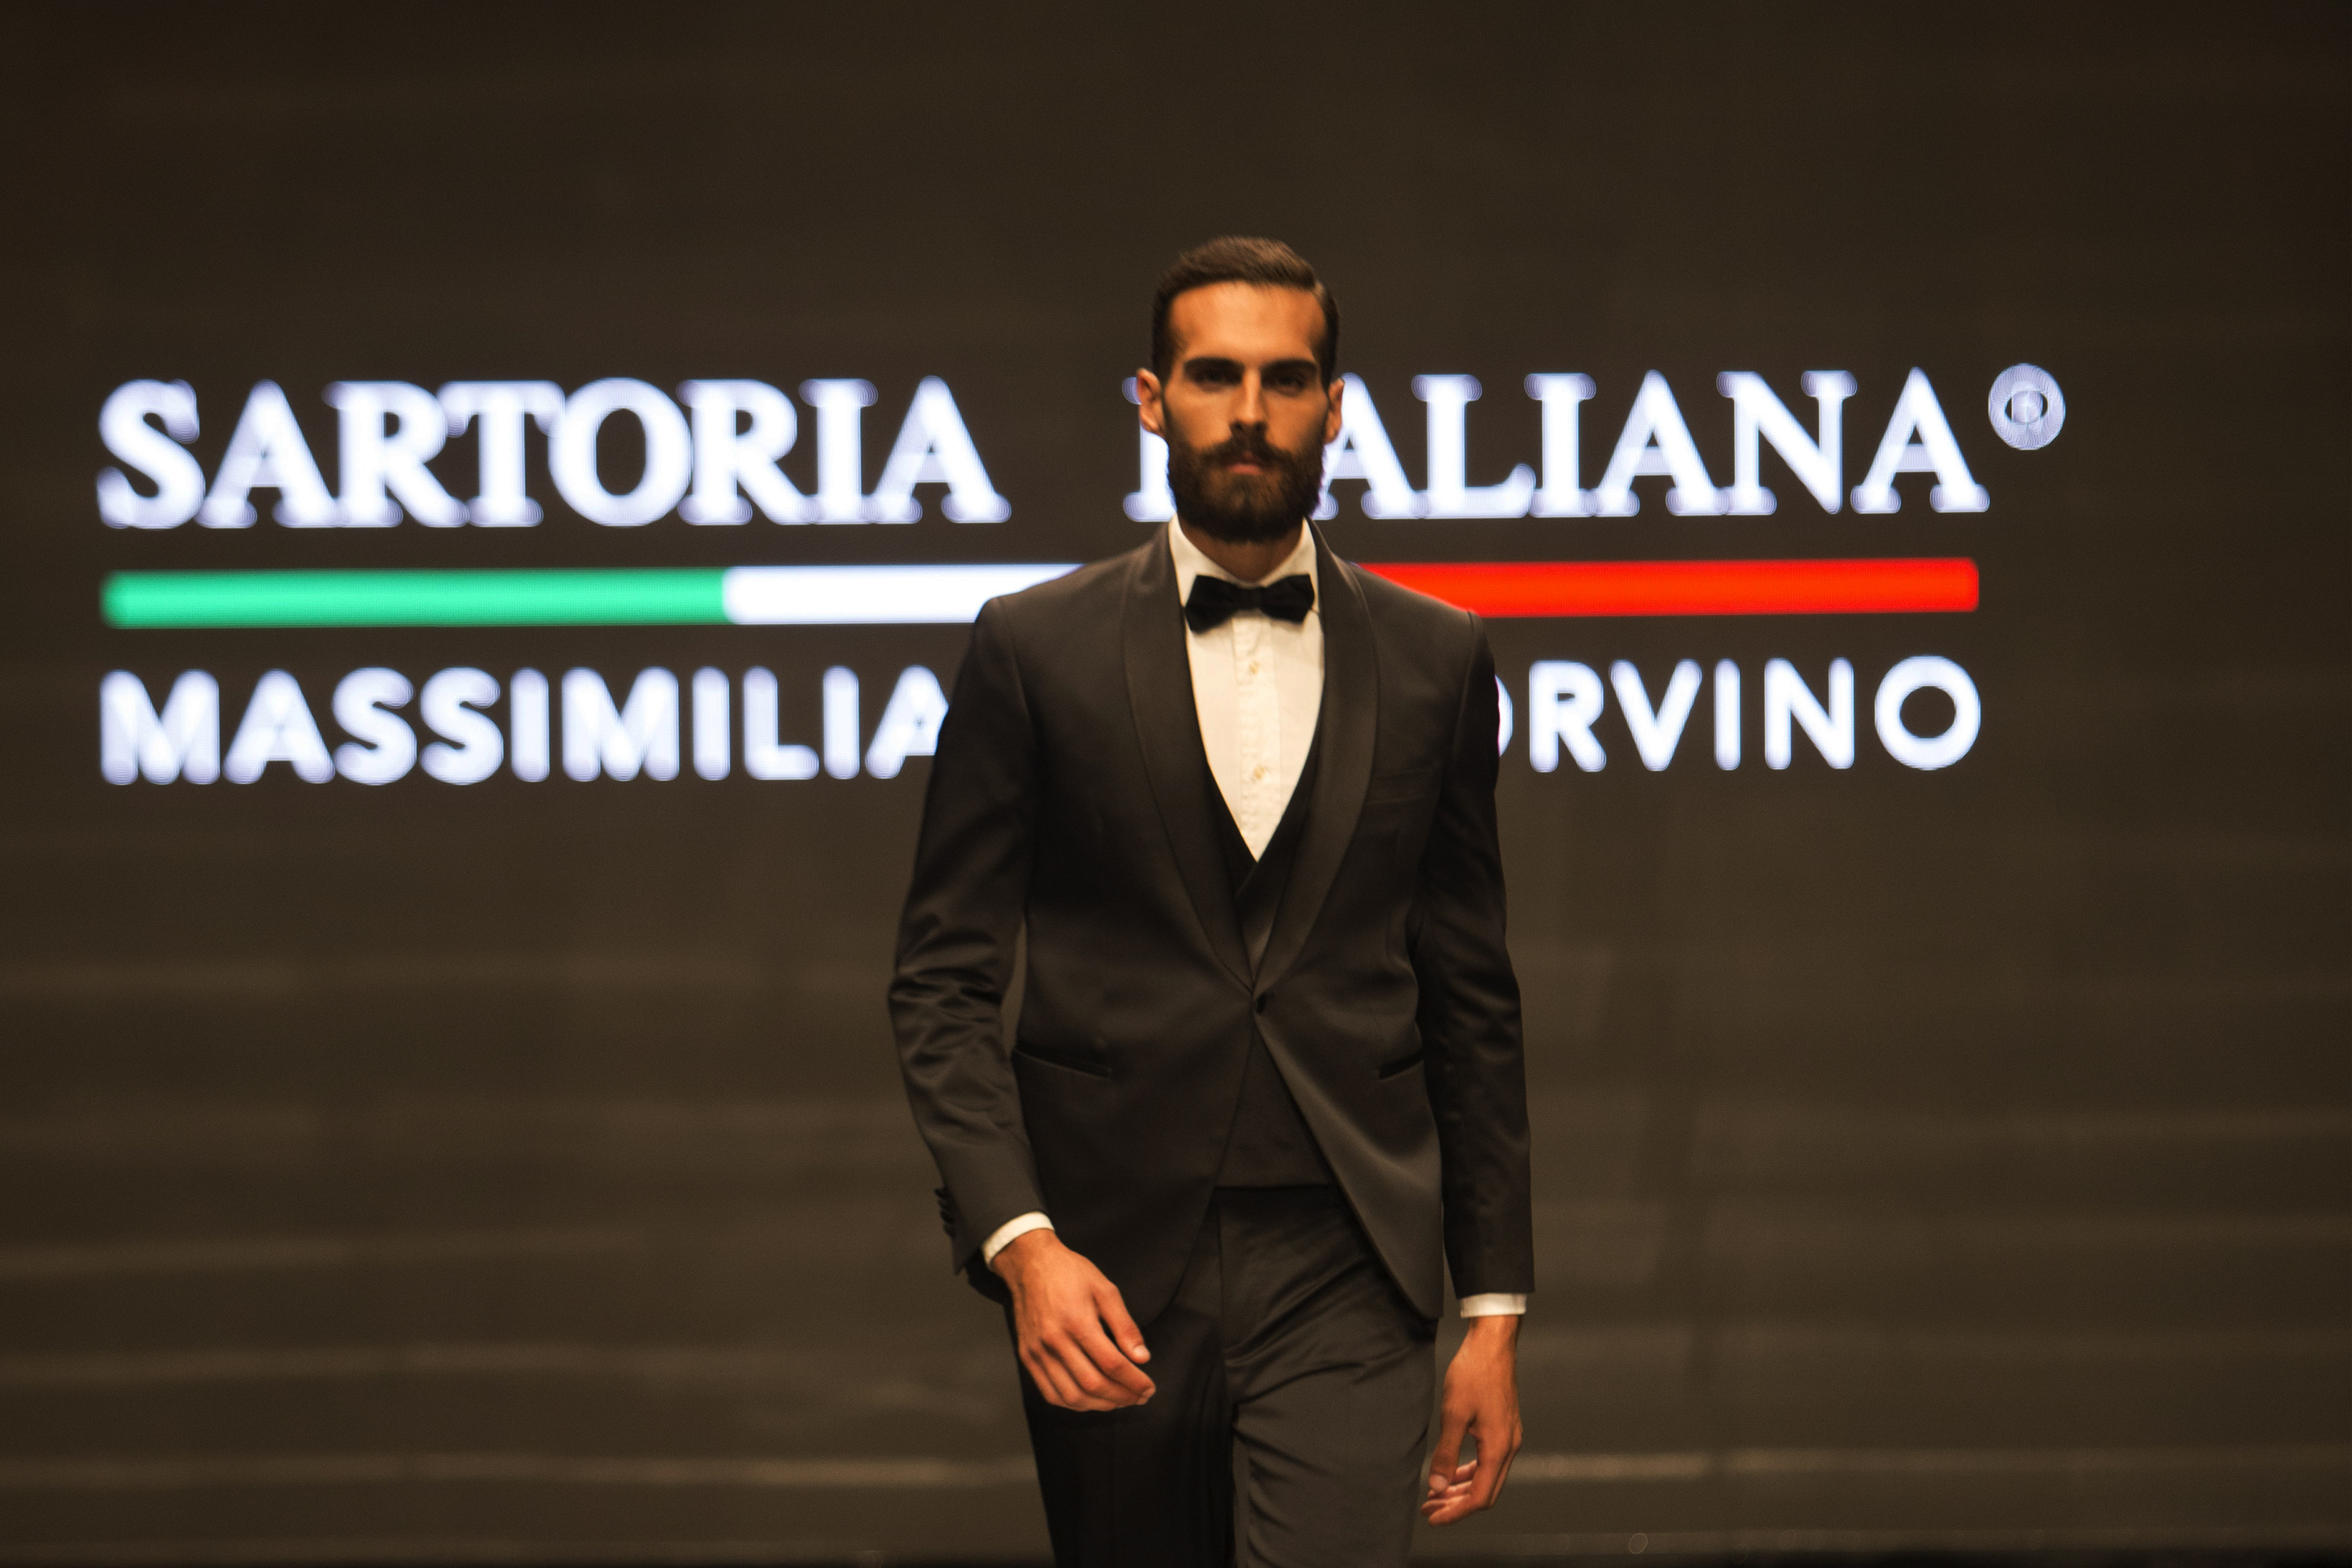 smoking uomo sartoria italiana massimiliano sorvino